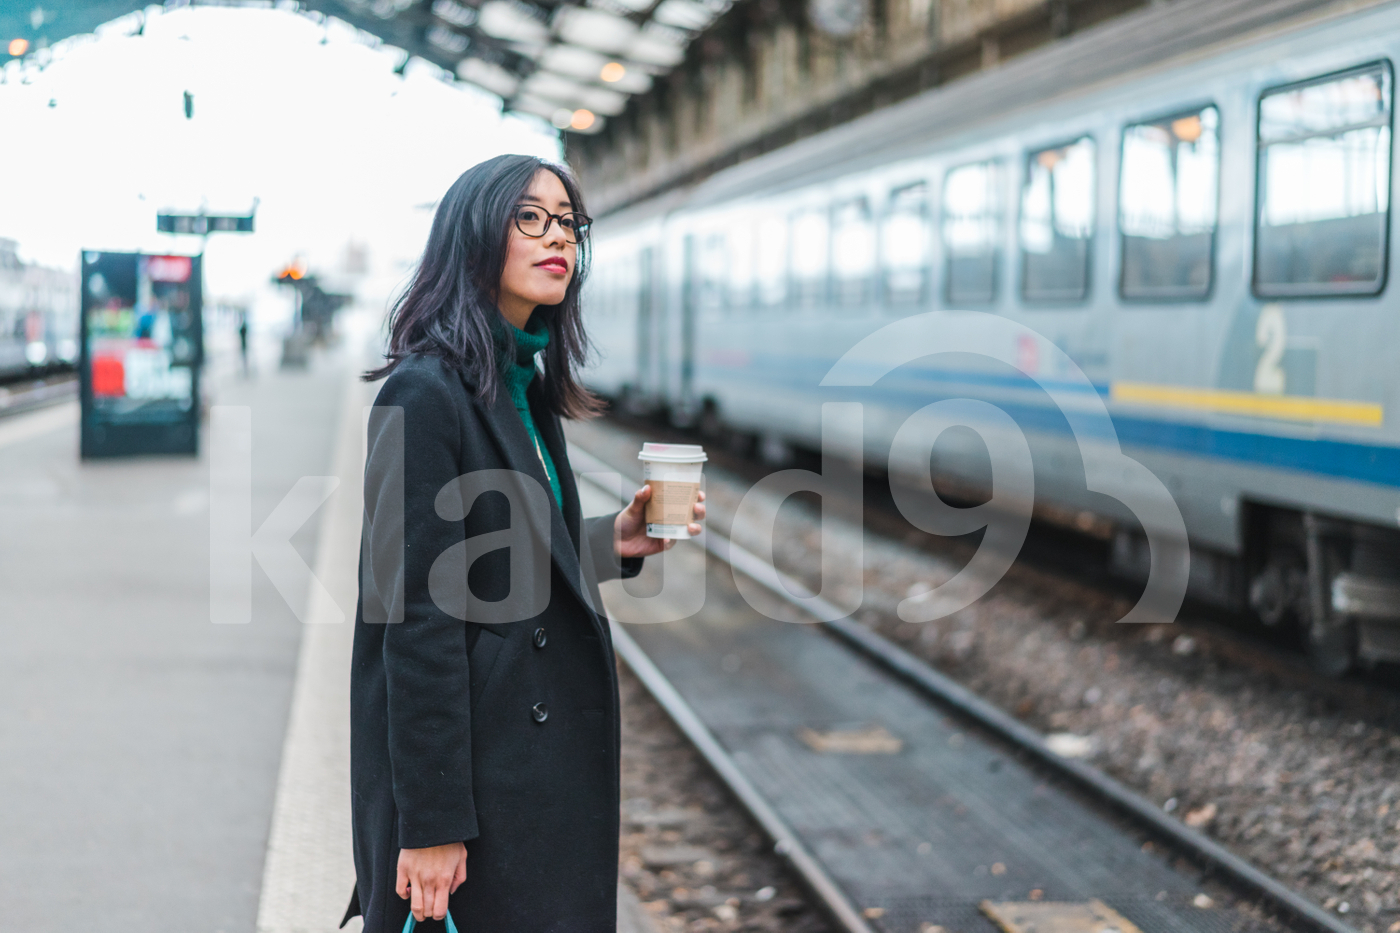 Asian woman waiting for a train holding a coffee cup